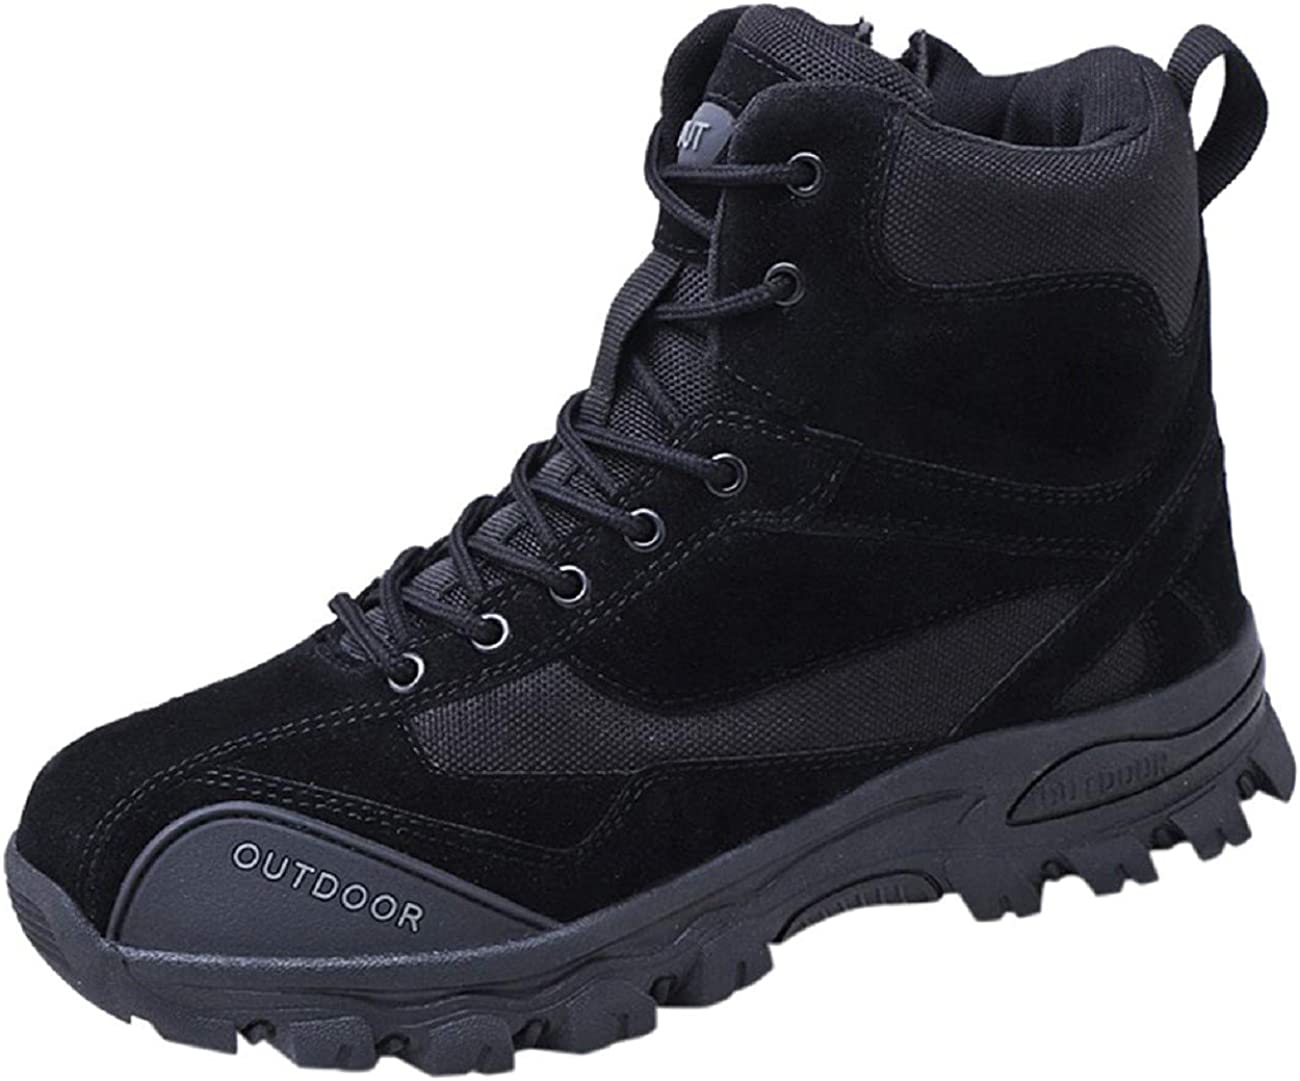 Tsmile Mens High-Top Lace Up Side Zipper Outdoor Climbing Boots Waterproof Canvas Round Toe Solid Resistant Shoes